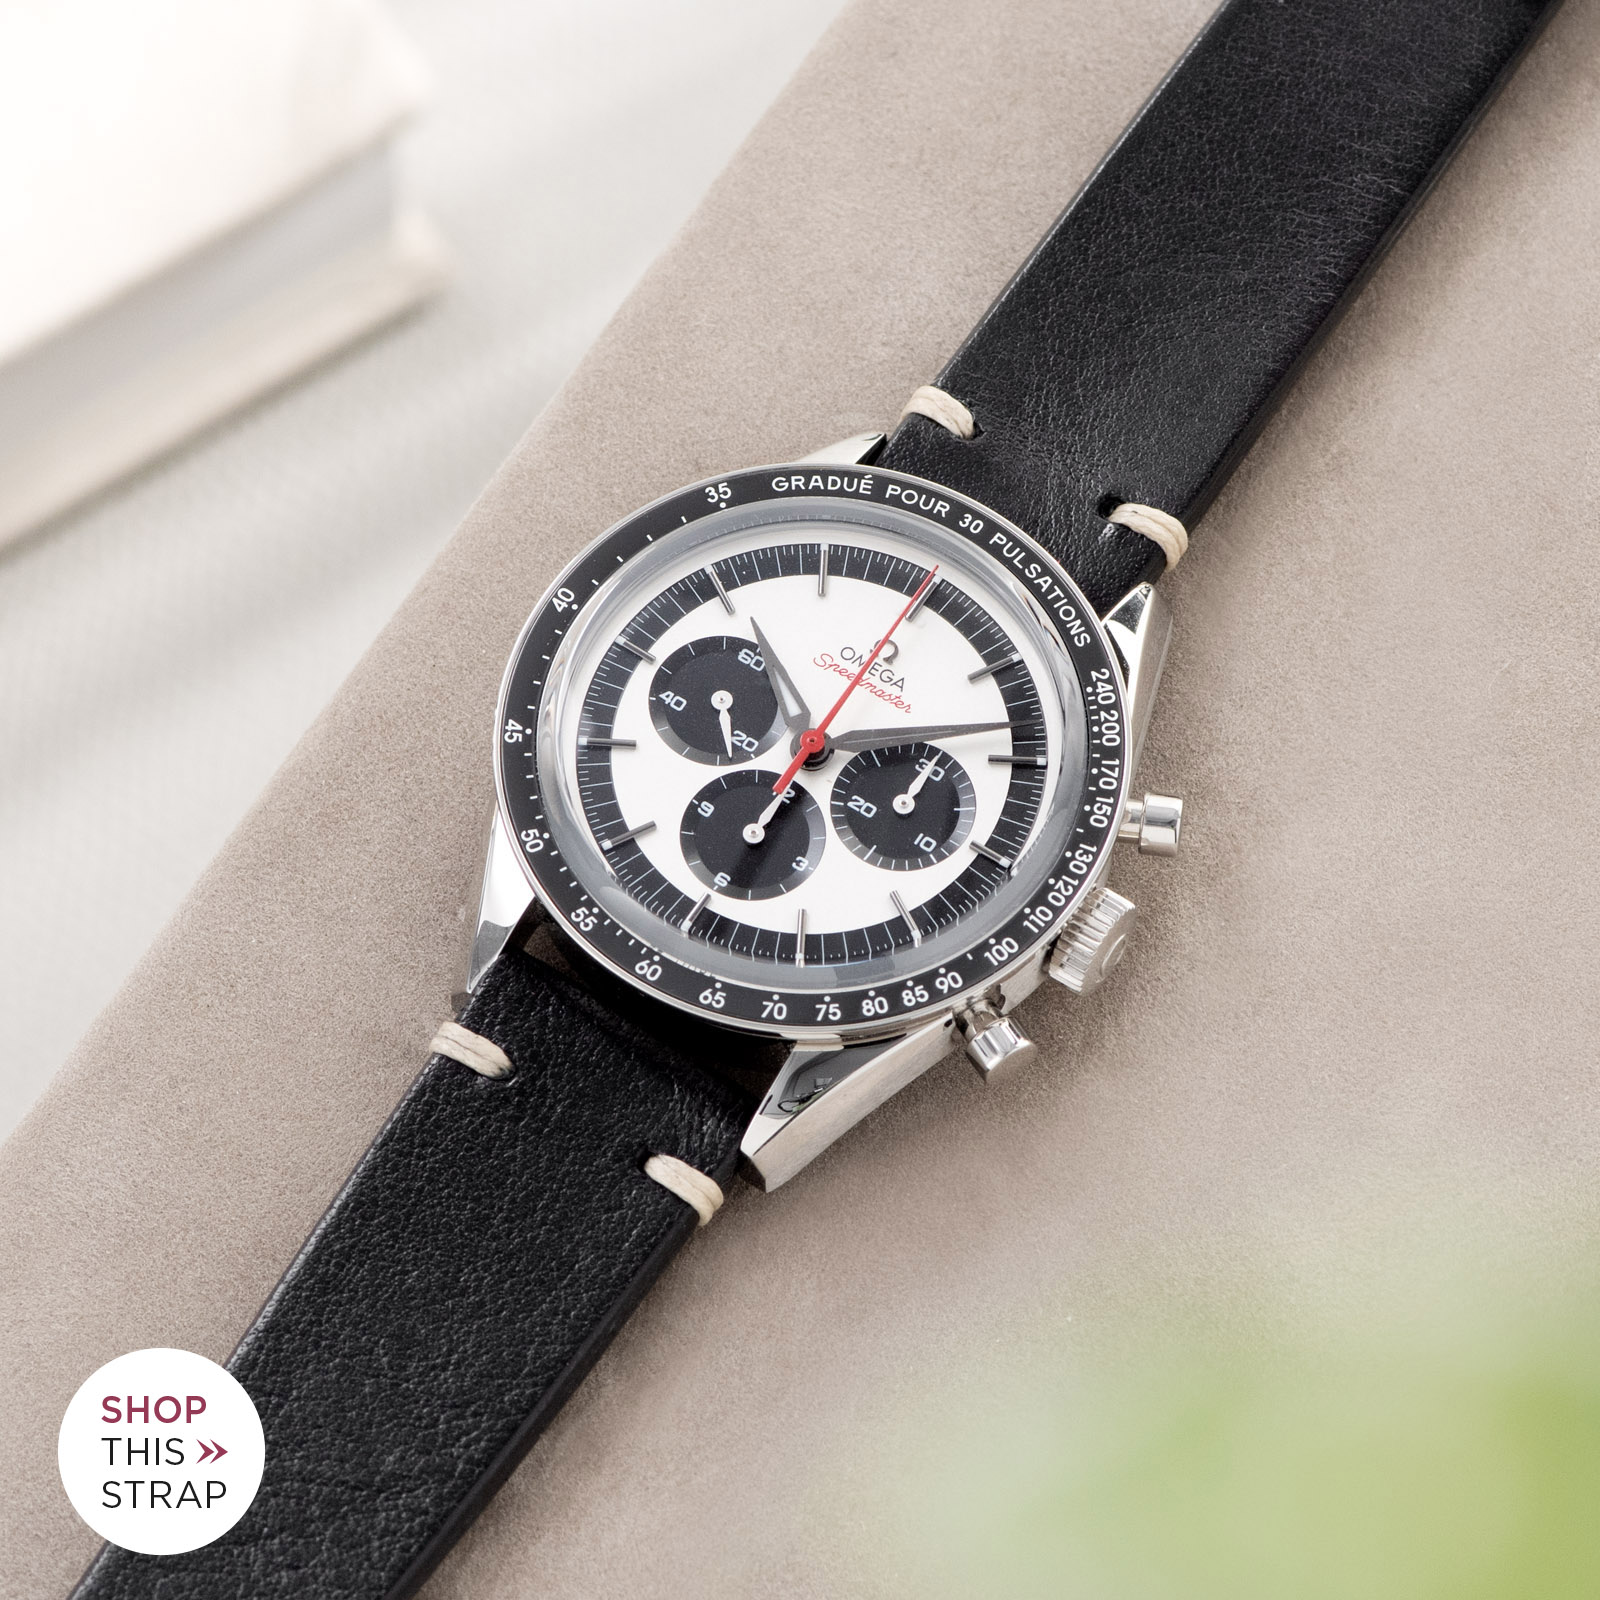 Bulang and Sons_Strap Guide_Omega Speedmaster 2998_Black Leather Watch Strappsd